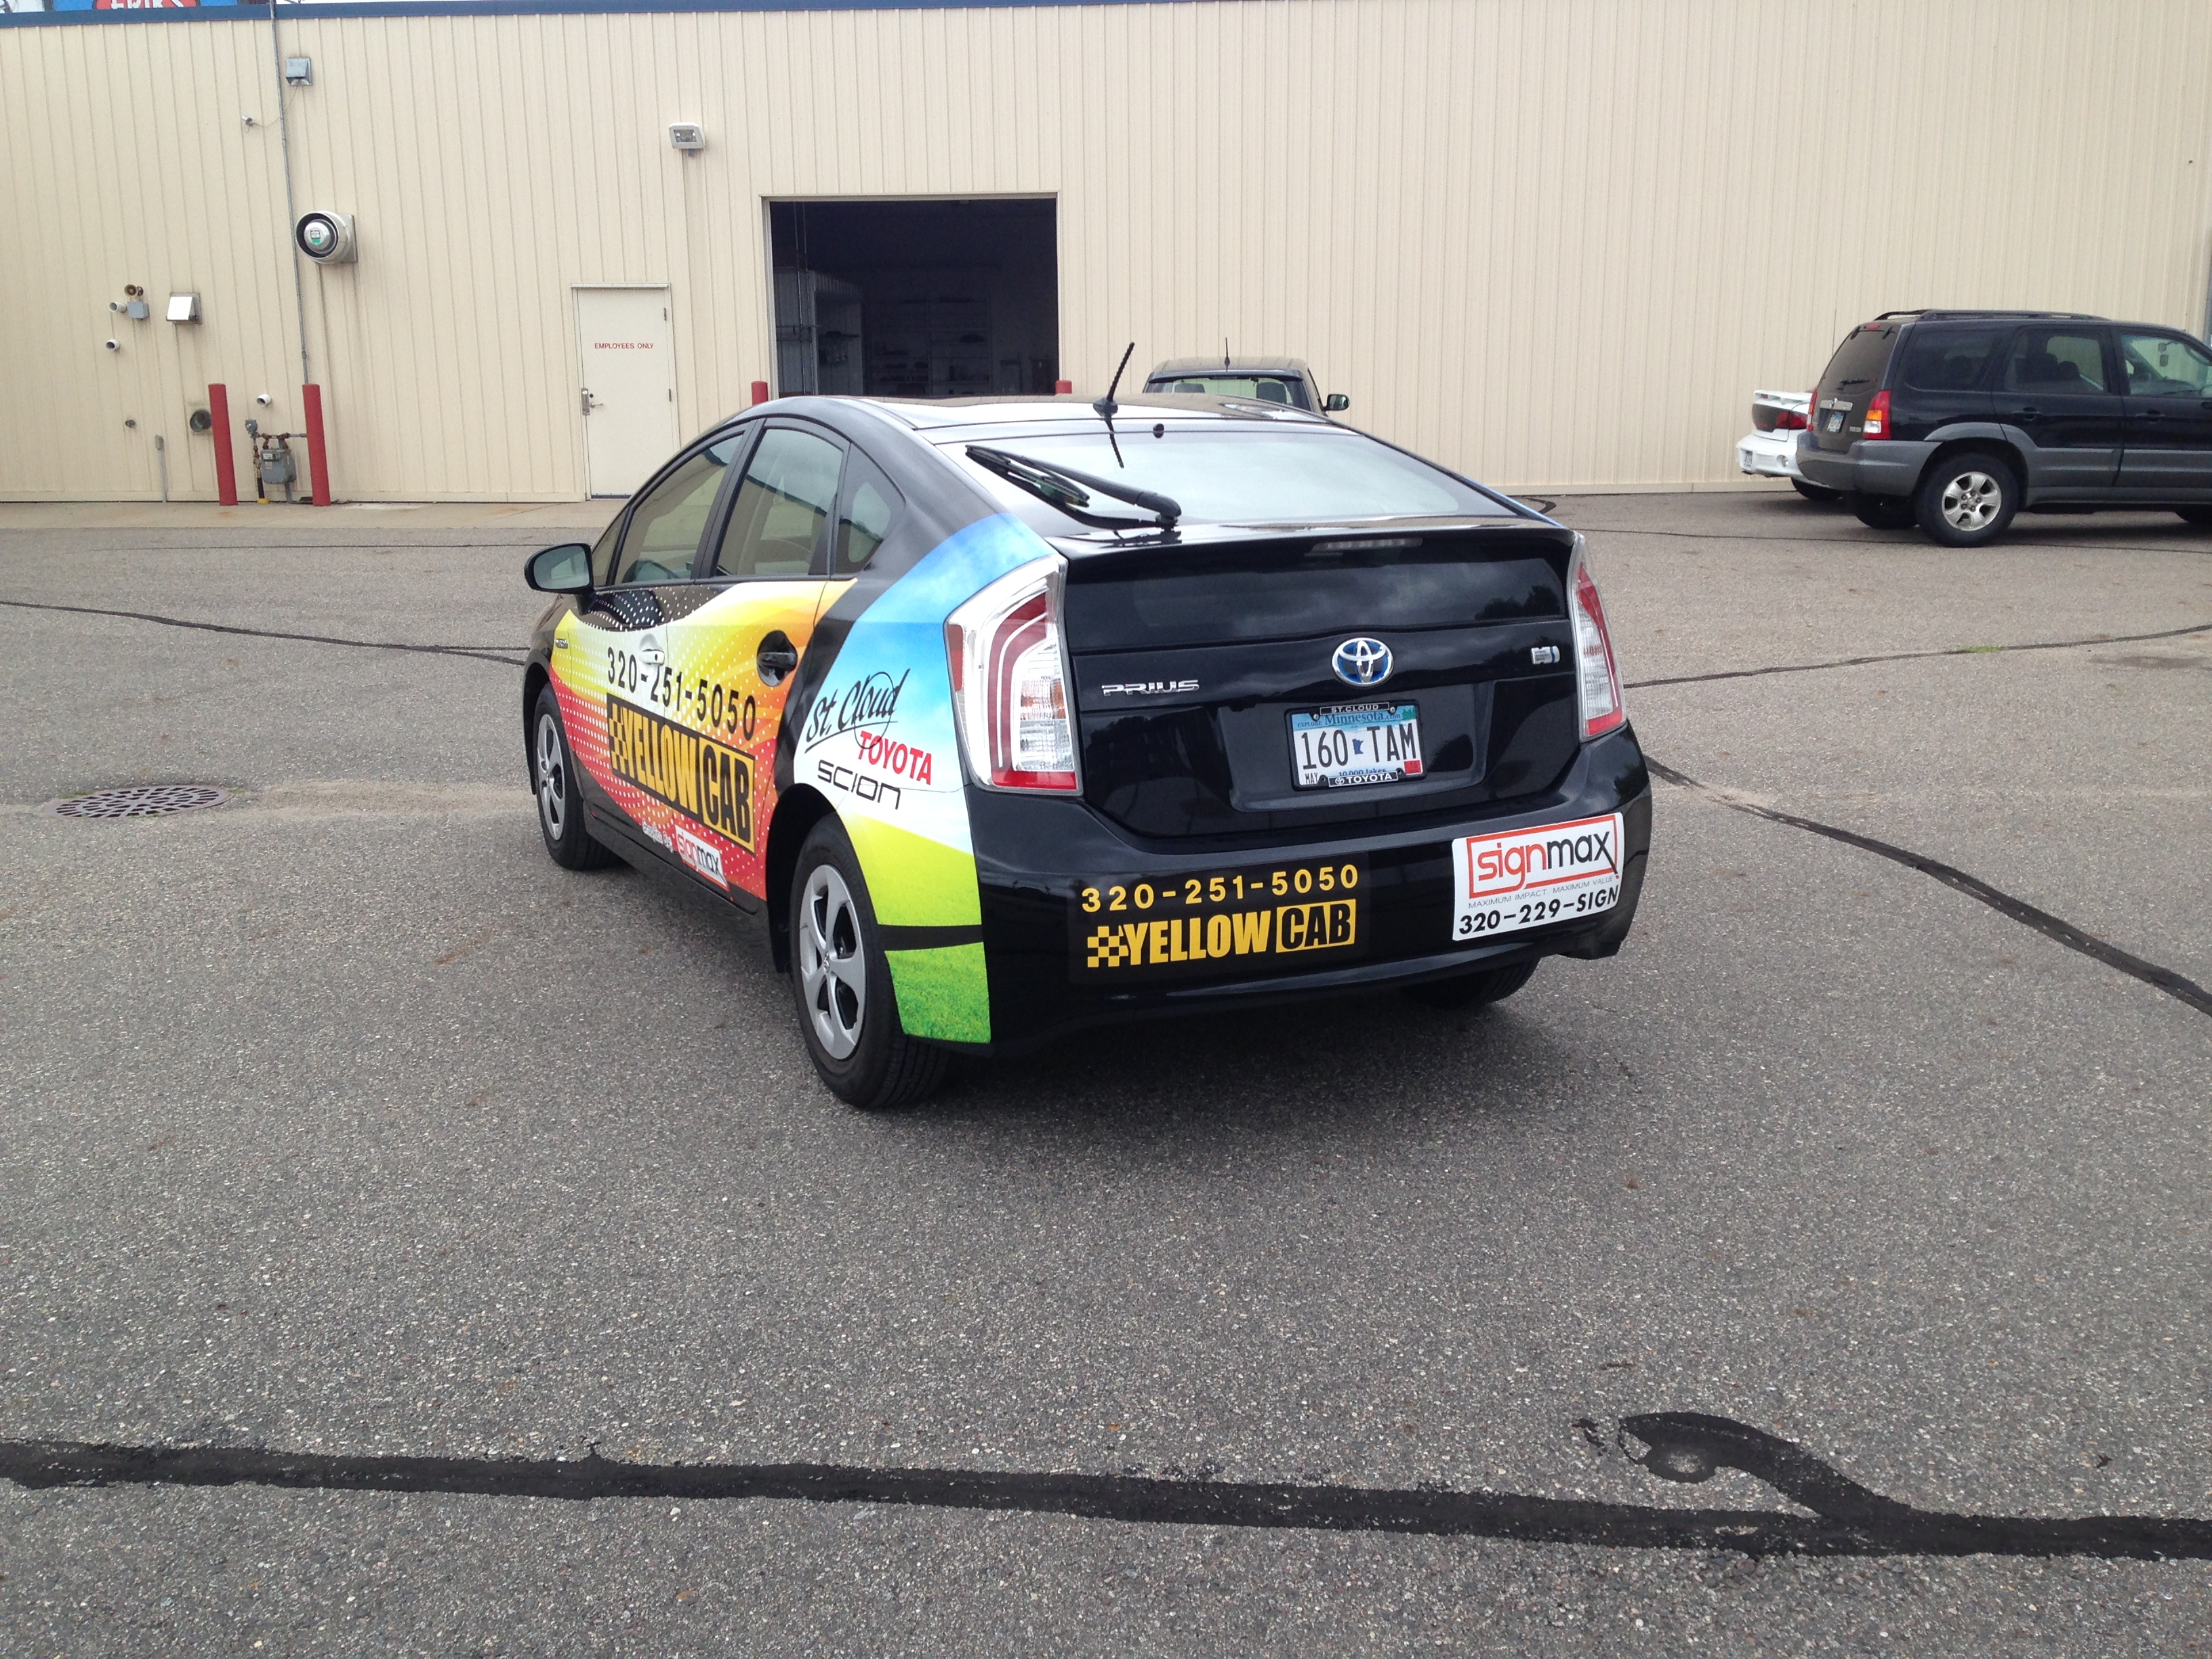 Custom Signs for Yellow Cab | Signmax.com